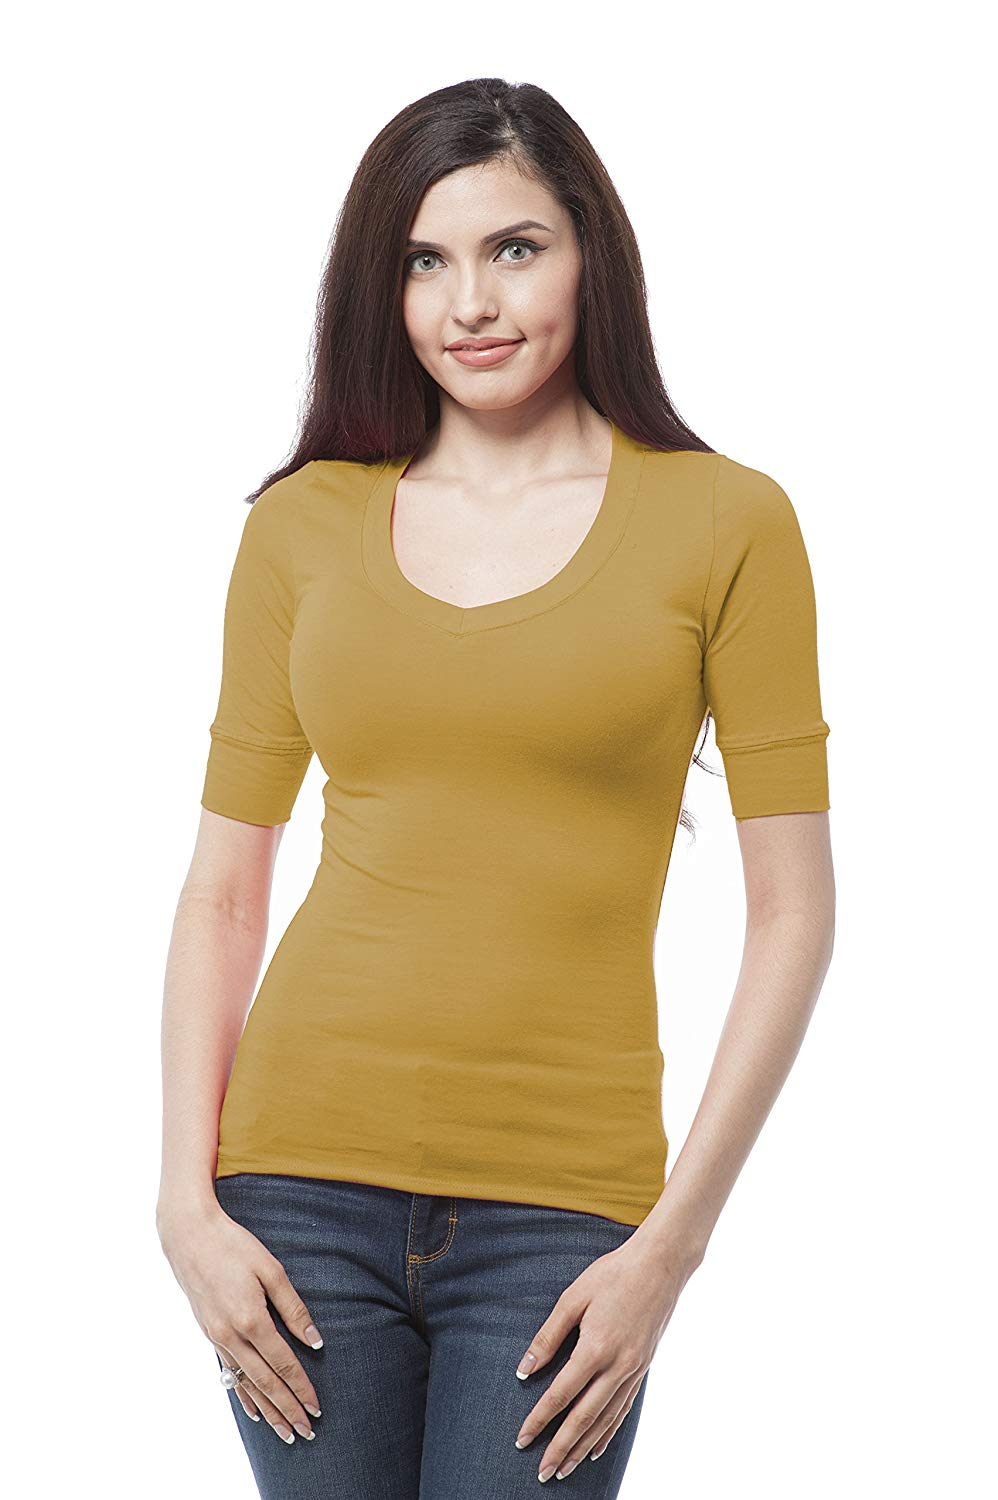 bc6ba583dc ... Stretch Seamless Strapless Layer Tube Top  8.99. Hollywood Star Fashion  Women s Plain Basic Elbow Length Sleeves V Neck Top Fitted Shirt